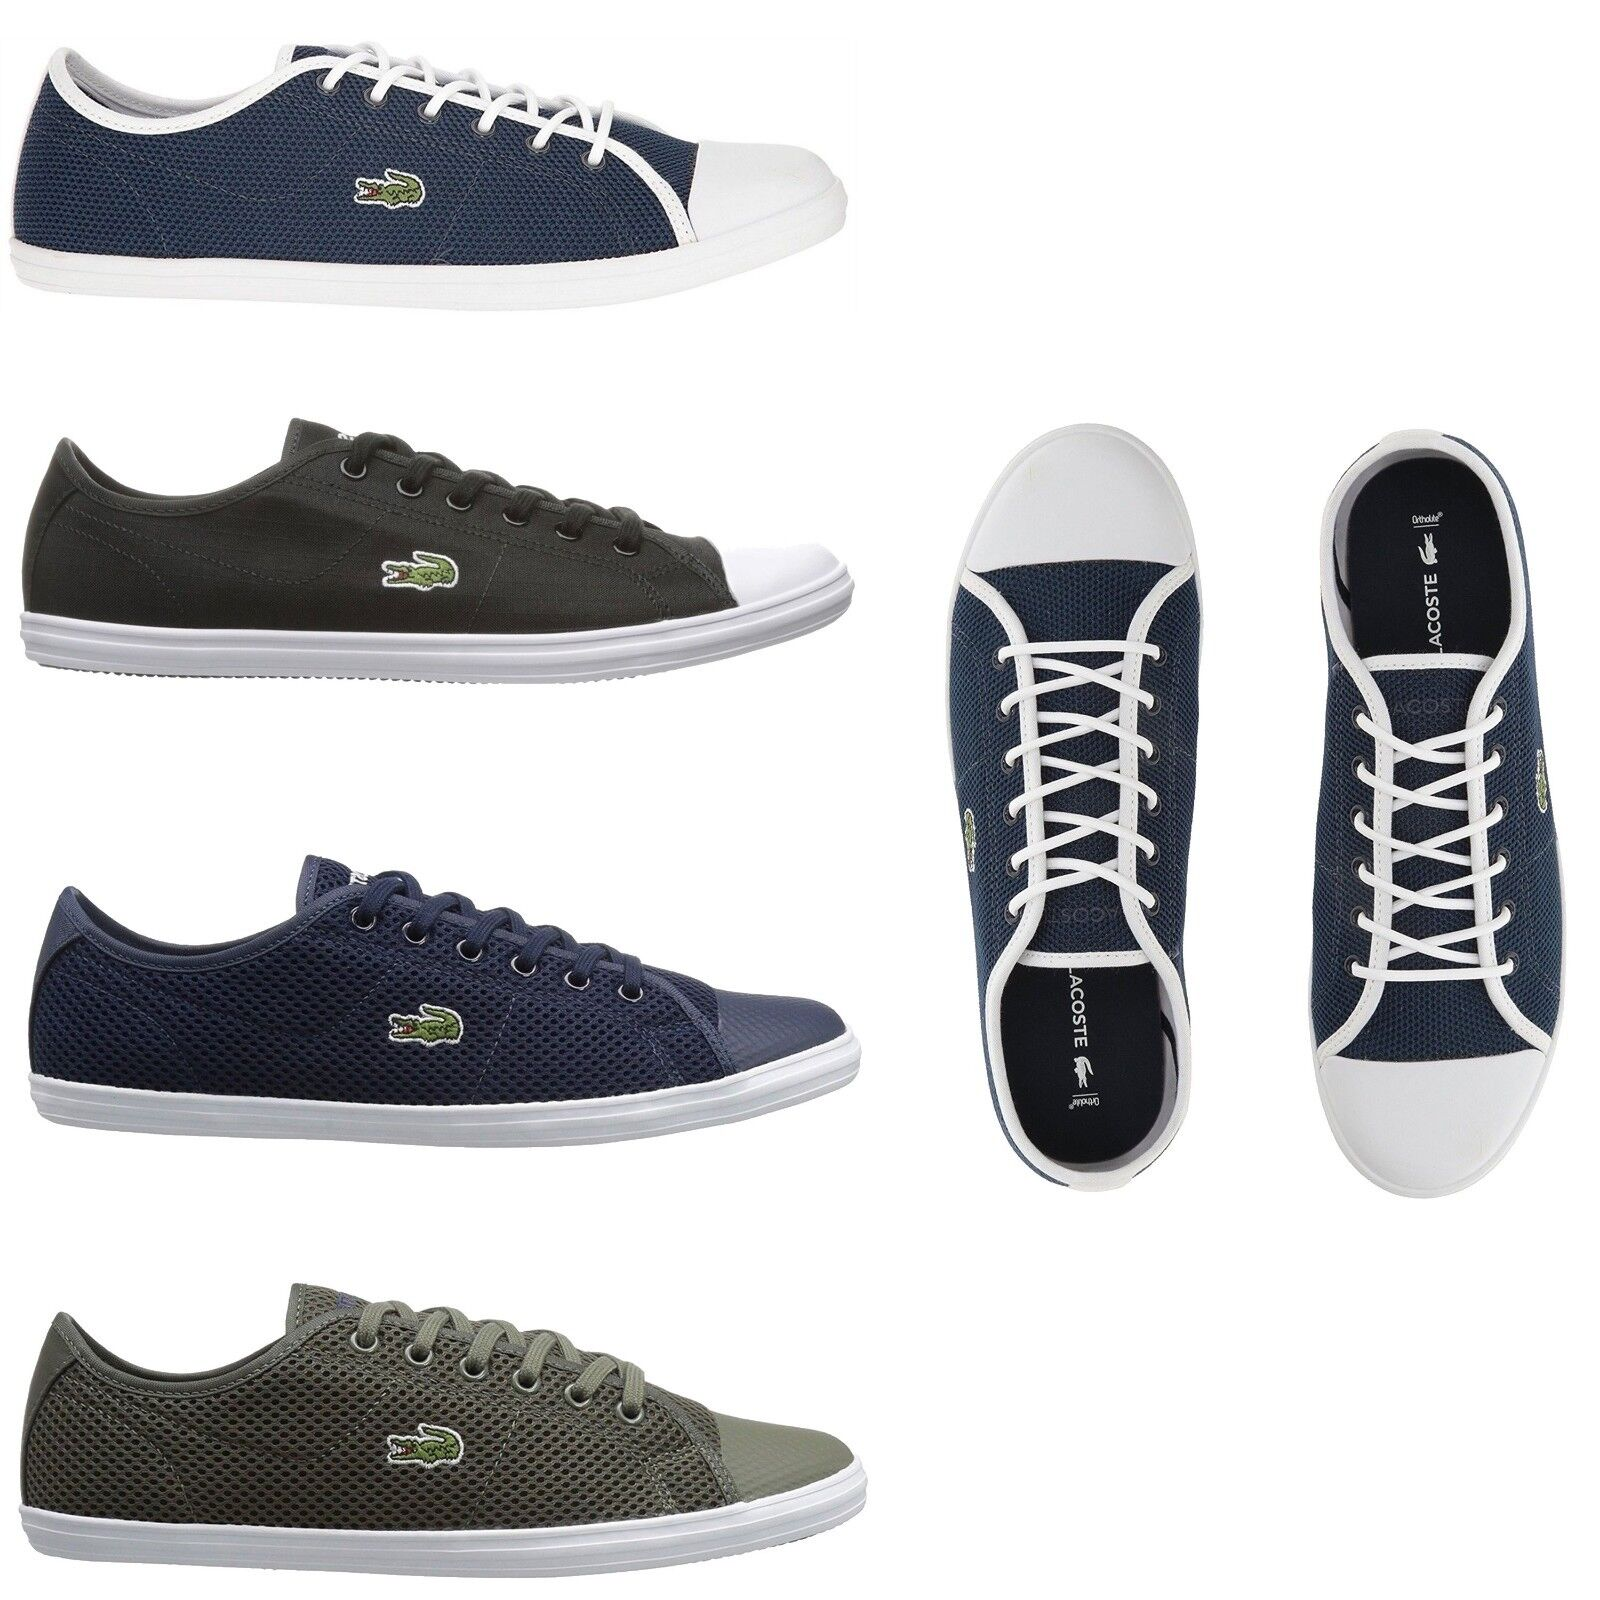 Lacoste femmes Fashion Casual Lace Up Chaussures New Ziane toile série Baskets